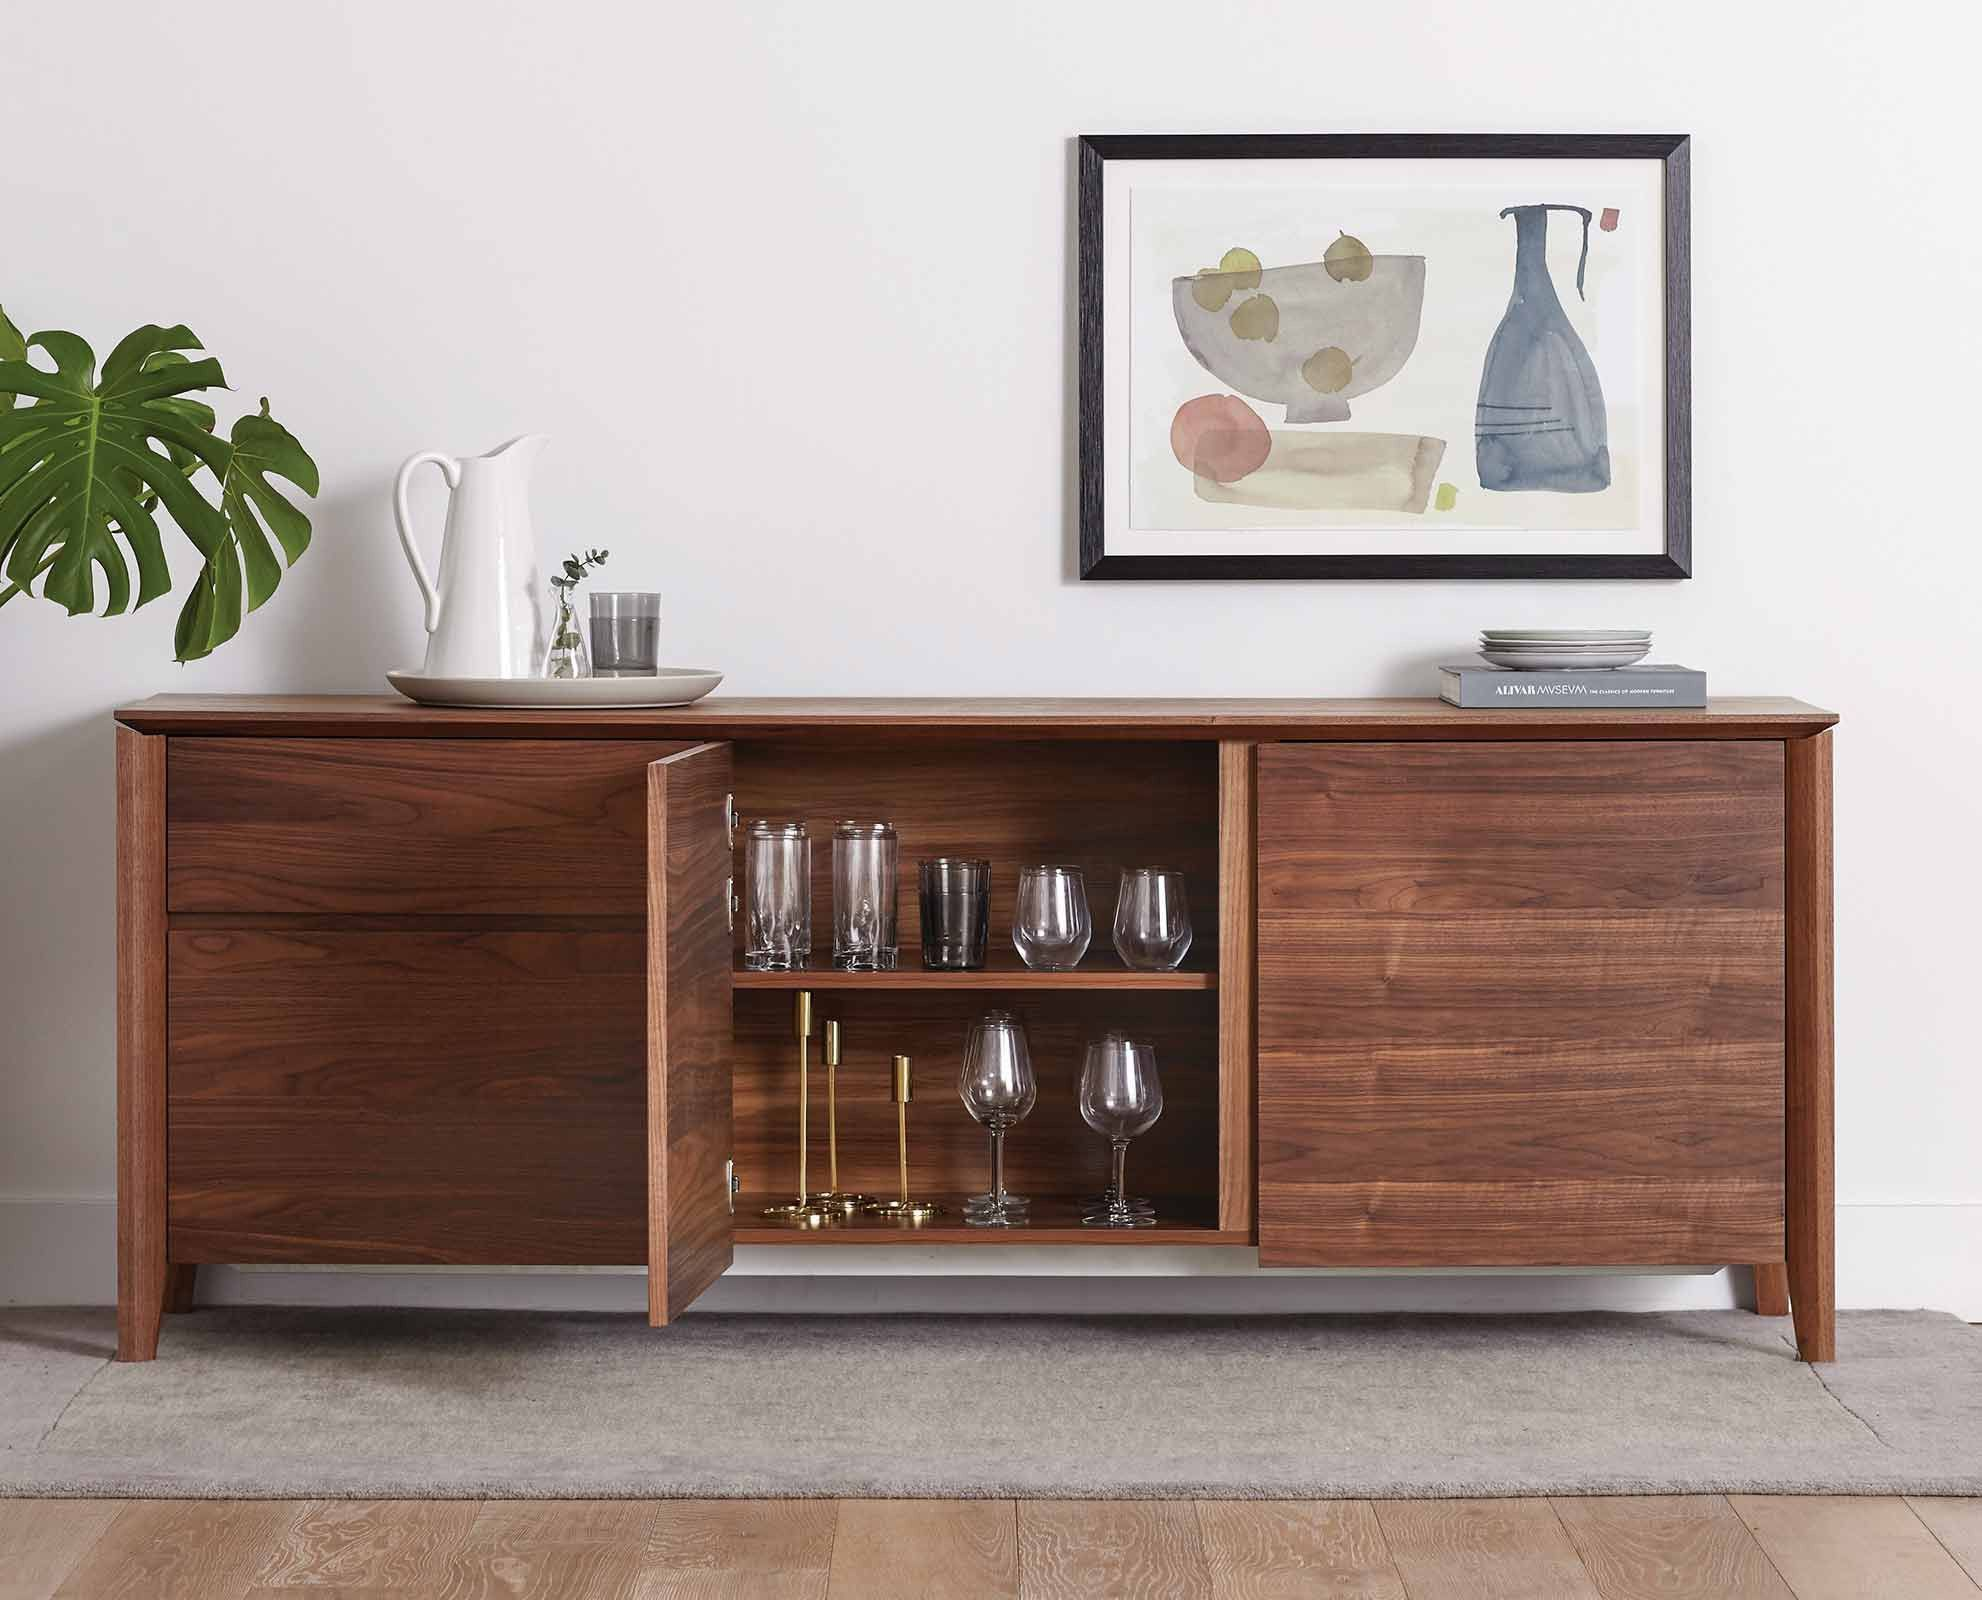 Elongate your dining room with the Vidare